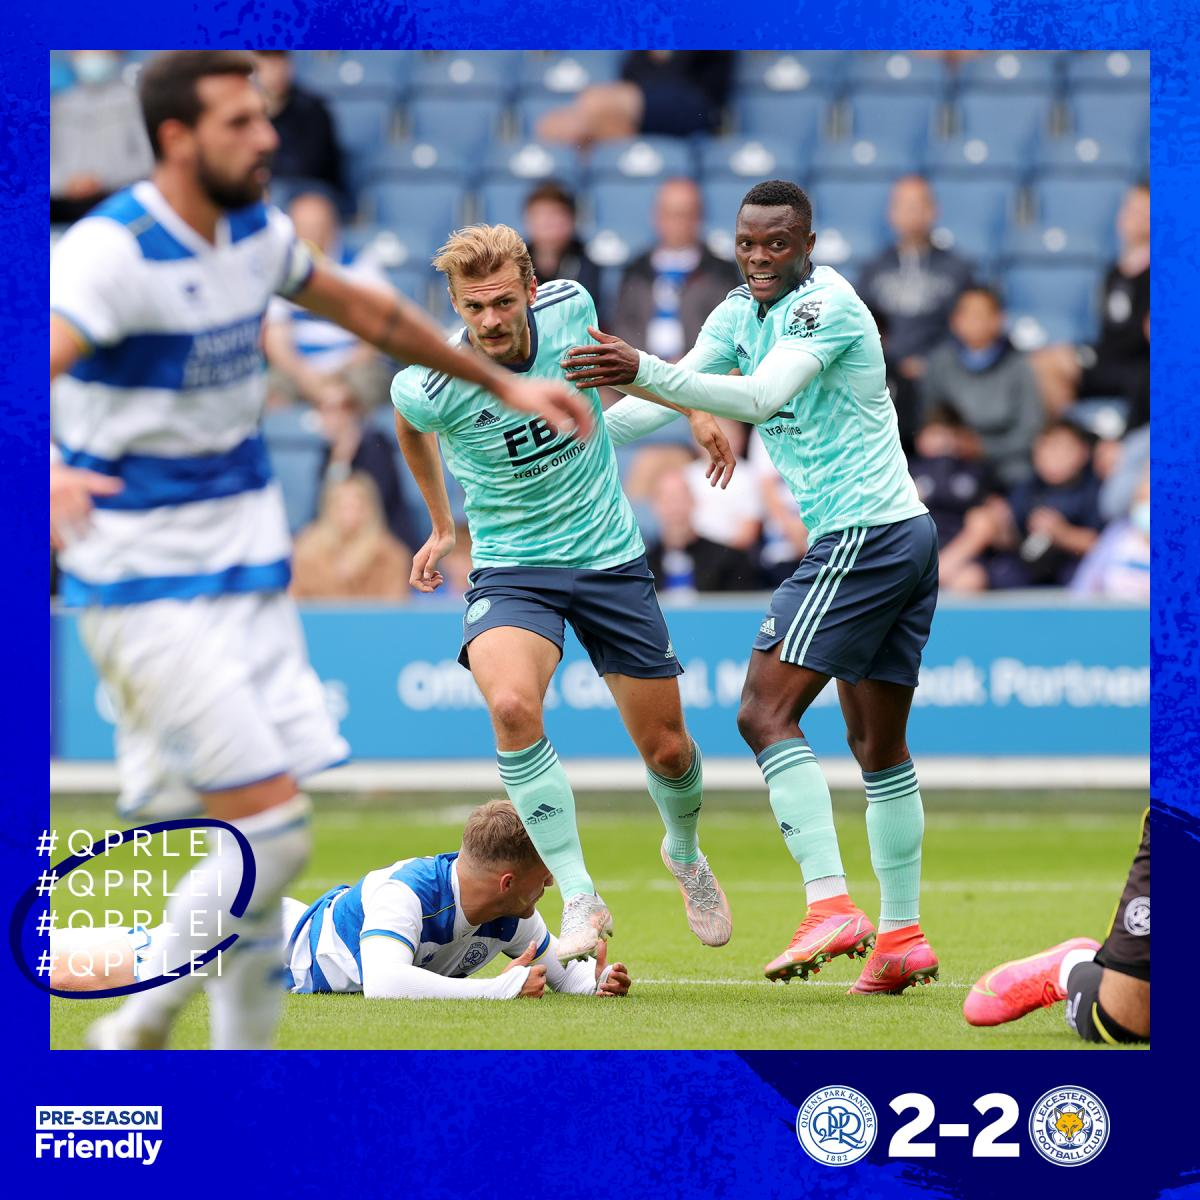 <b><a href='https://vavel.com/en/football/2020/09/22/leicester-city/1038280-leicester-city-vs-arsenal-previewhow-to-watch-kick-off-time-team-news-predicted-lineups-and-ones-to-watch.html'>Kiernan Dewsbury-Hall</a></b> and <b><a href='https://vavel.com/en/football/2021/07/19/leicester-city/1078601-five-leicester-city-youngsters-to-look-out-for-this-season.html'>Patson Daka</a></b> both score to make it 2-2 | Credit: @LCFC